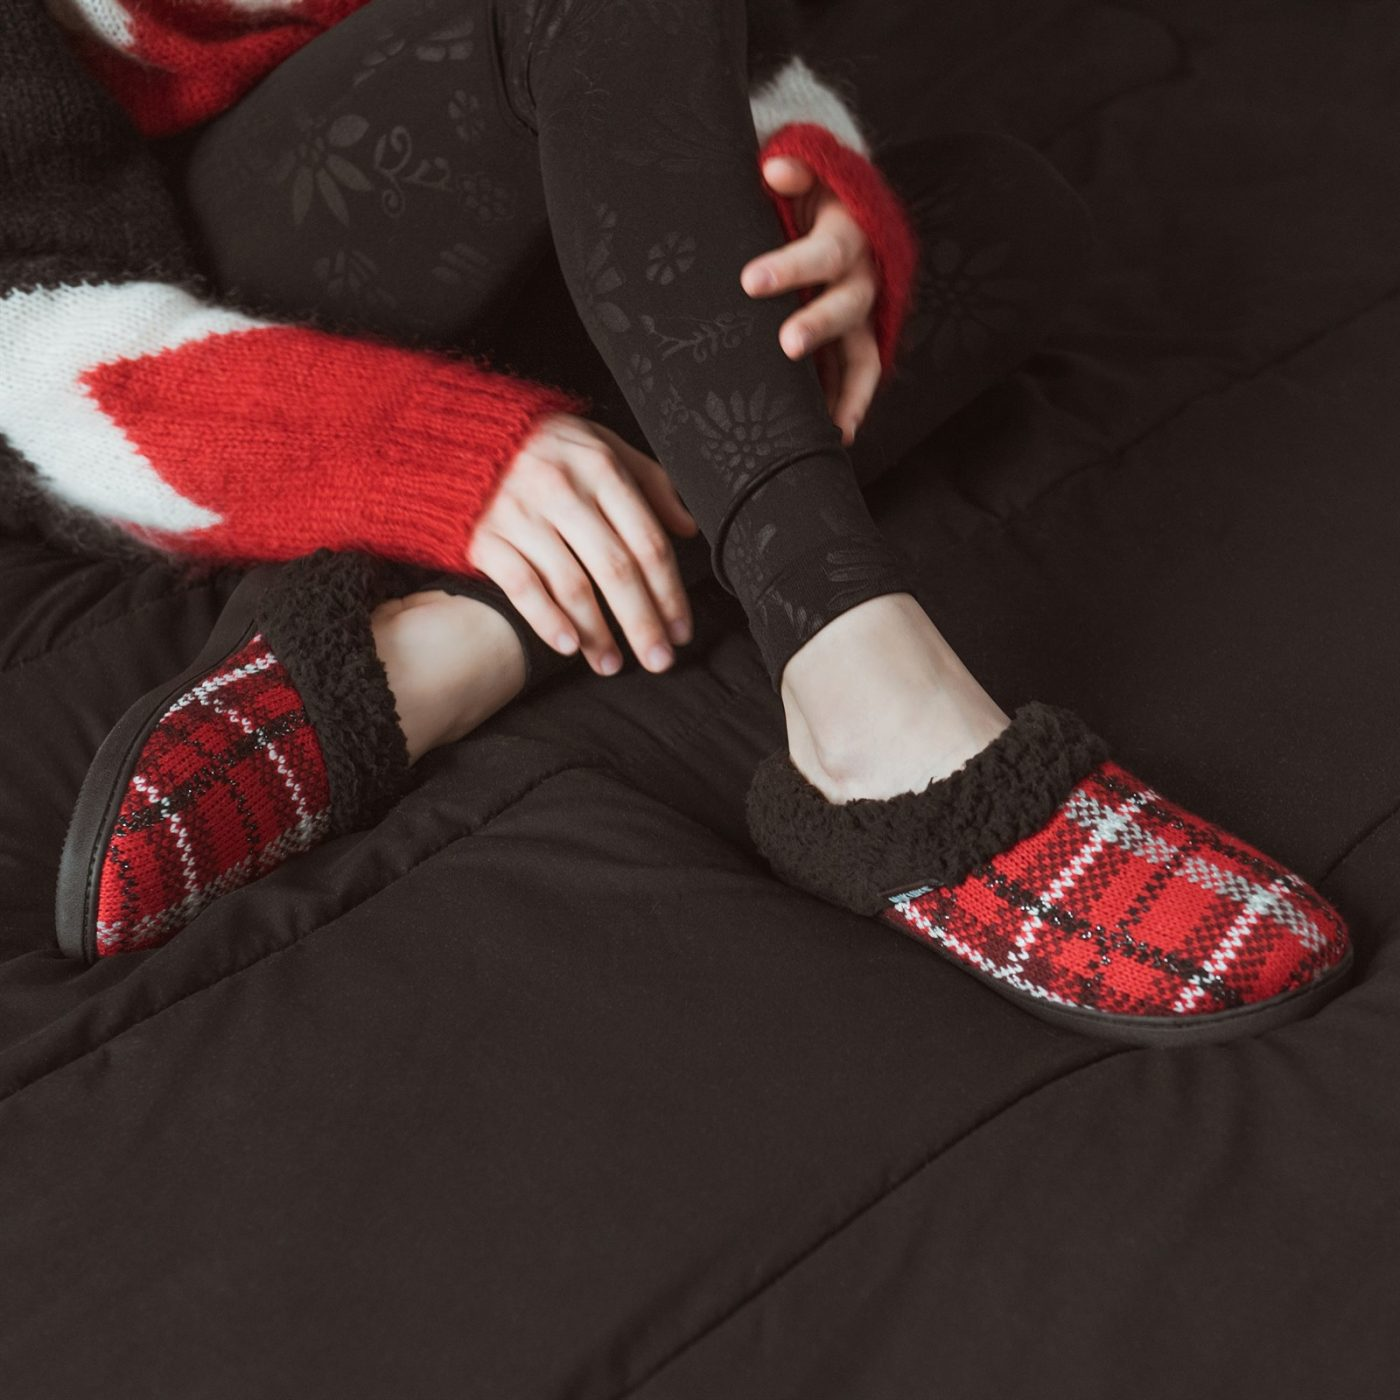 Was $30.00 - Now $19.99 - MUK LUKS Suzanne Slippers   Free Shipping (10/12 to 10/14)